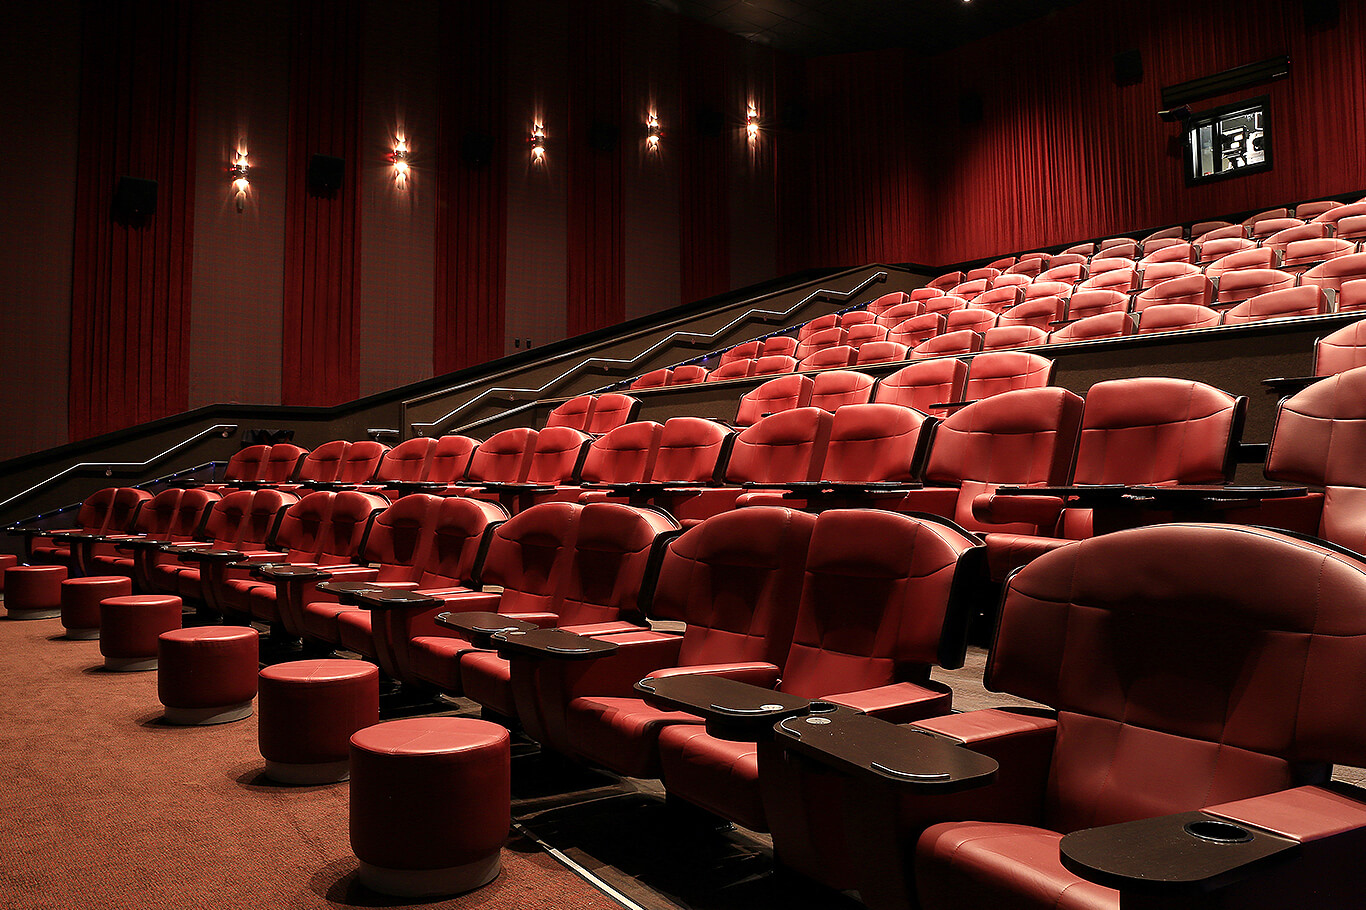 Dolphin Mall's Cobb Dolphin 19 Cinemas is a movie theater megaplex featuring amenities such as stadium seating, curved screens, digital stereo sound, and 26 refreshment stations. Cobb Dolphin 19 Cinemas' design incorporates a Miami theme throughout the facility! Today's Hours.